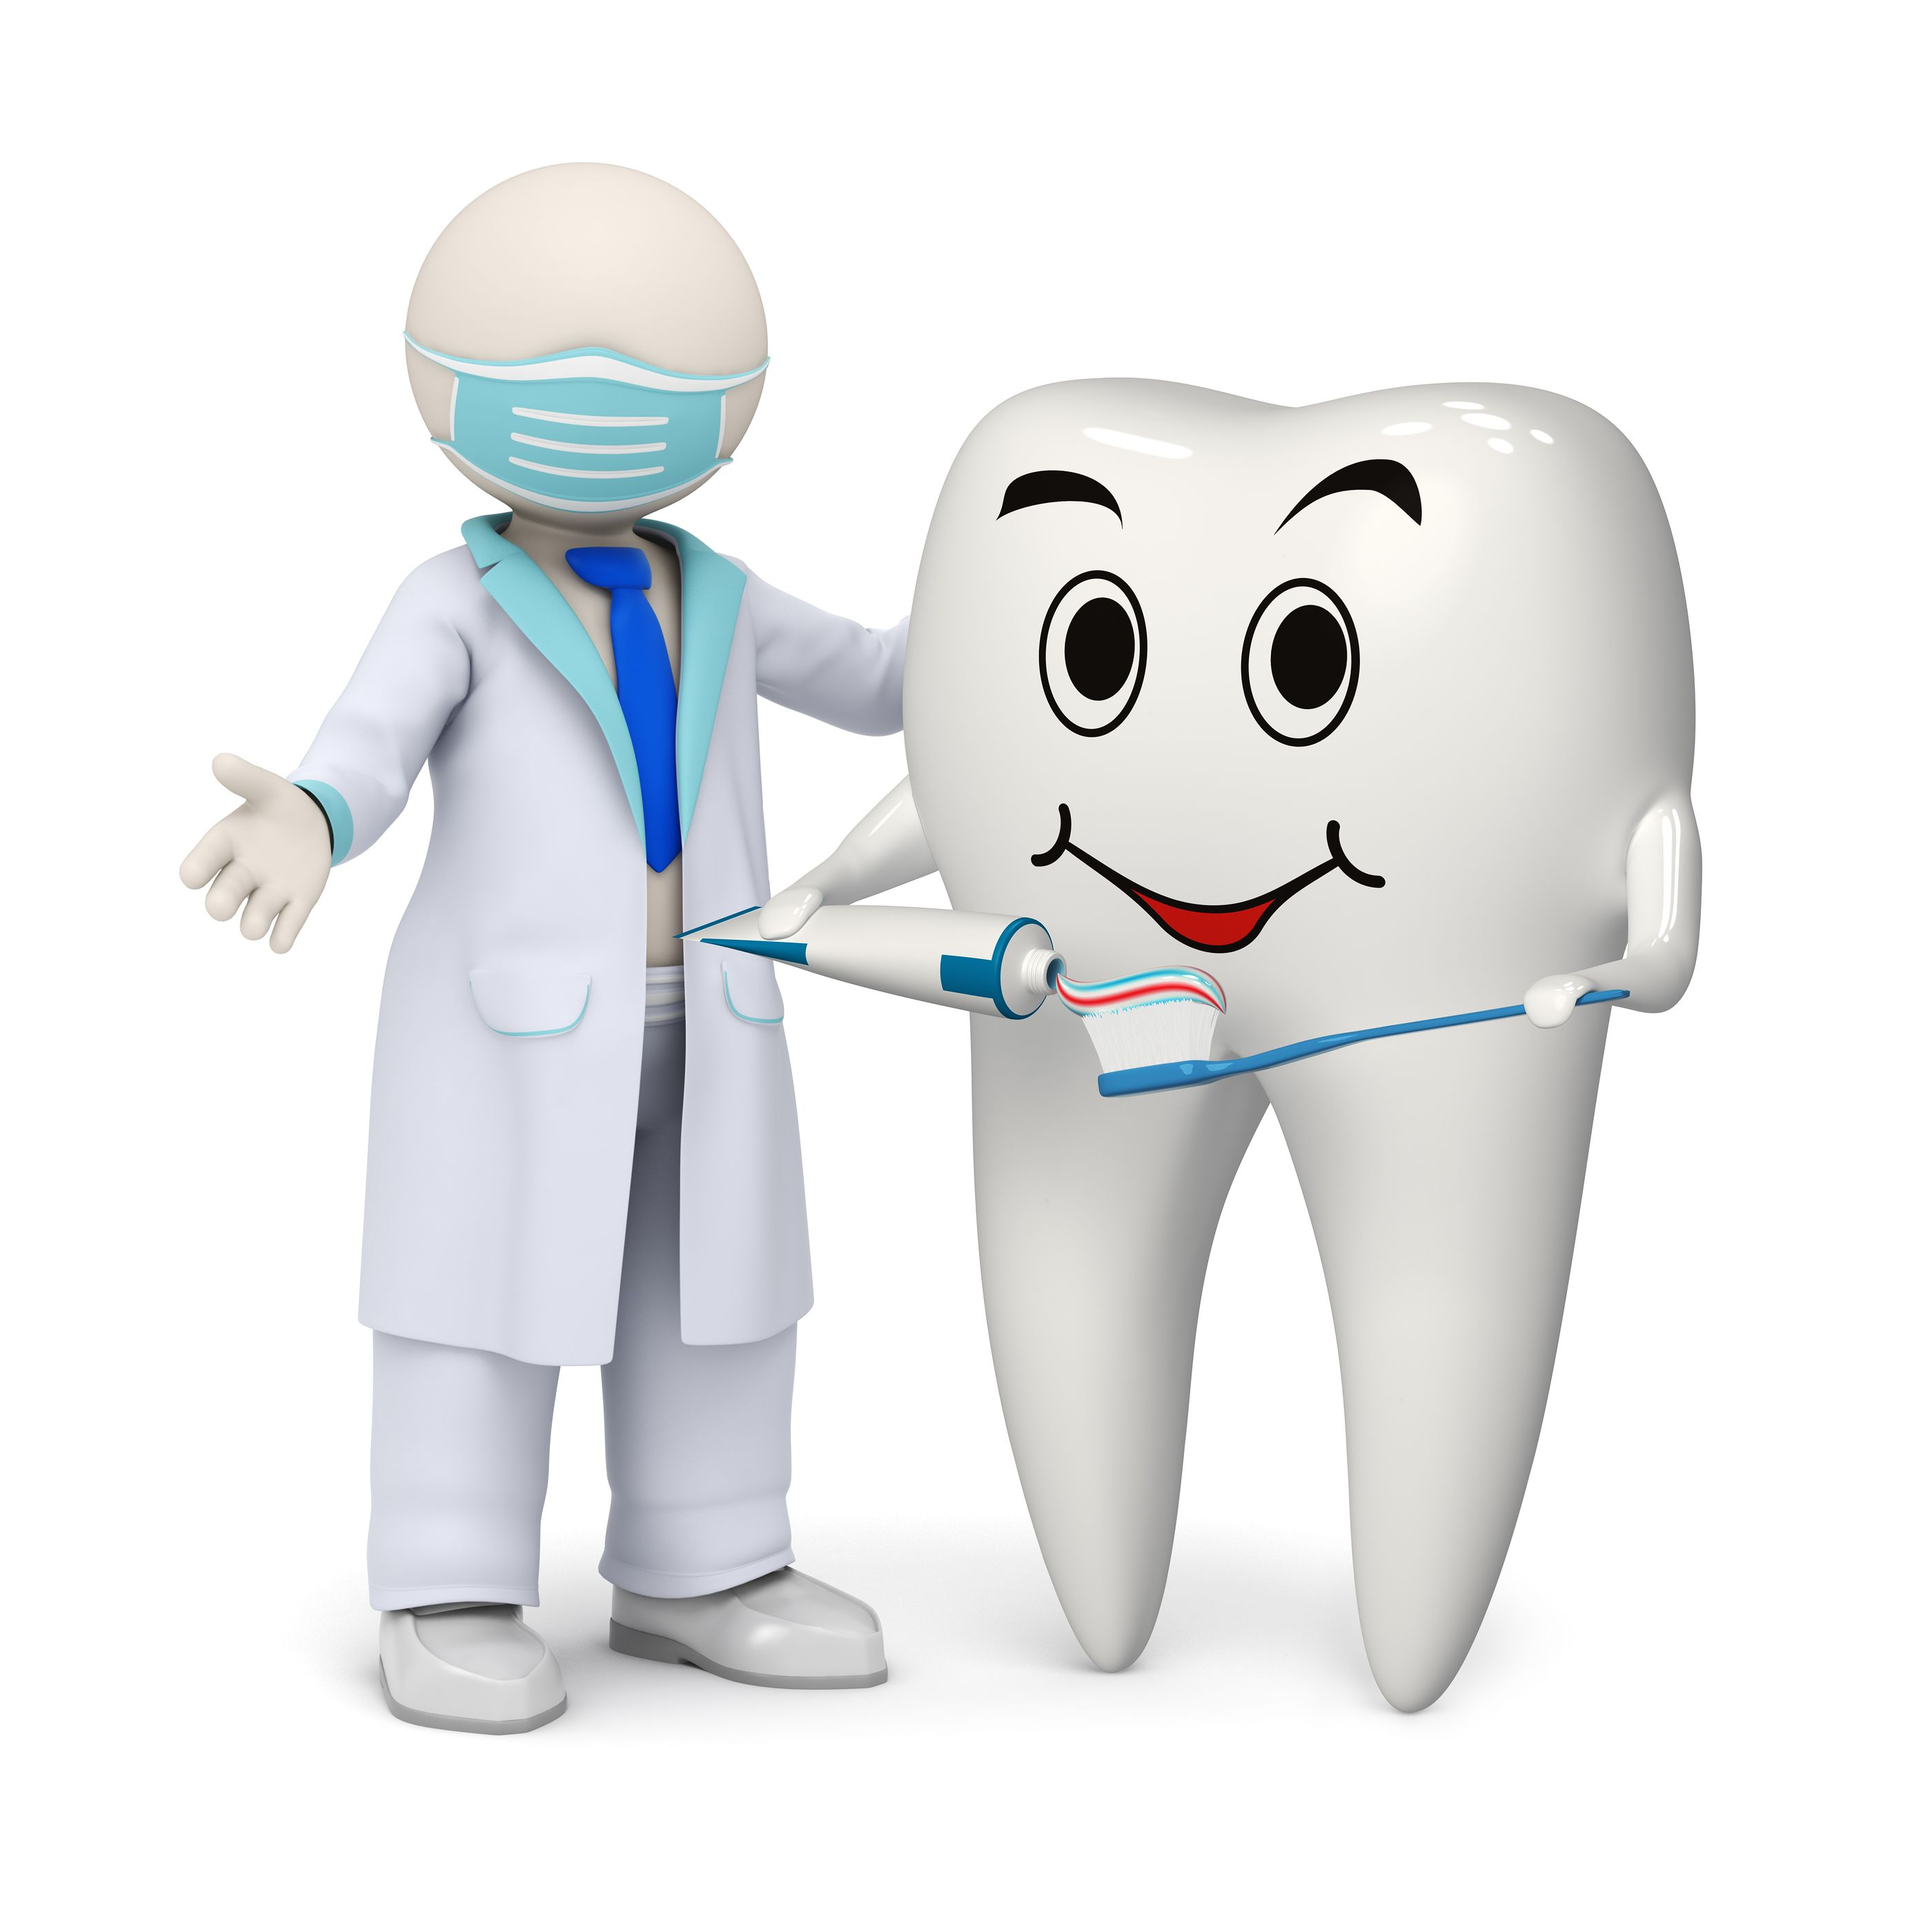 Our services include family dentistry, emergency dentistry, cosmetic dentistry, metal free crowns and fillings, preventative dentistry, restoring dental implants, and a dental hygiene program to promote good dental health and dental education.